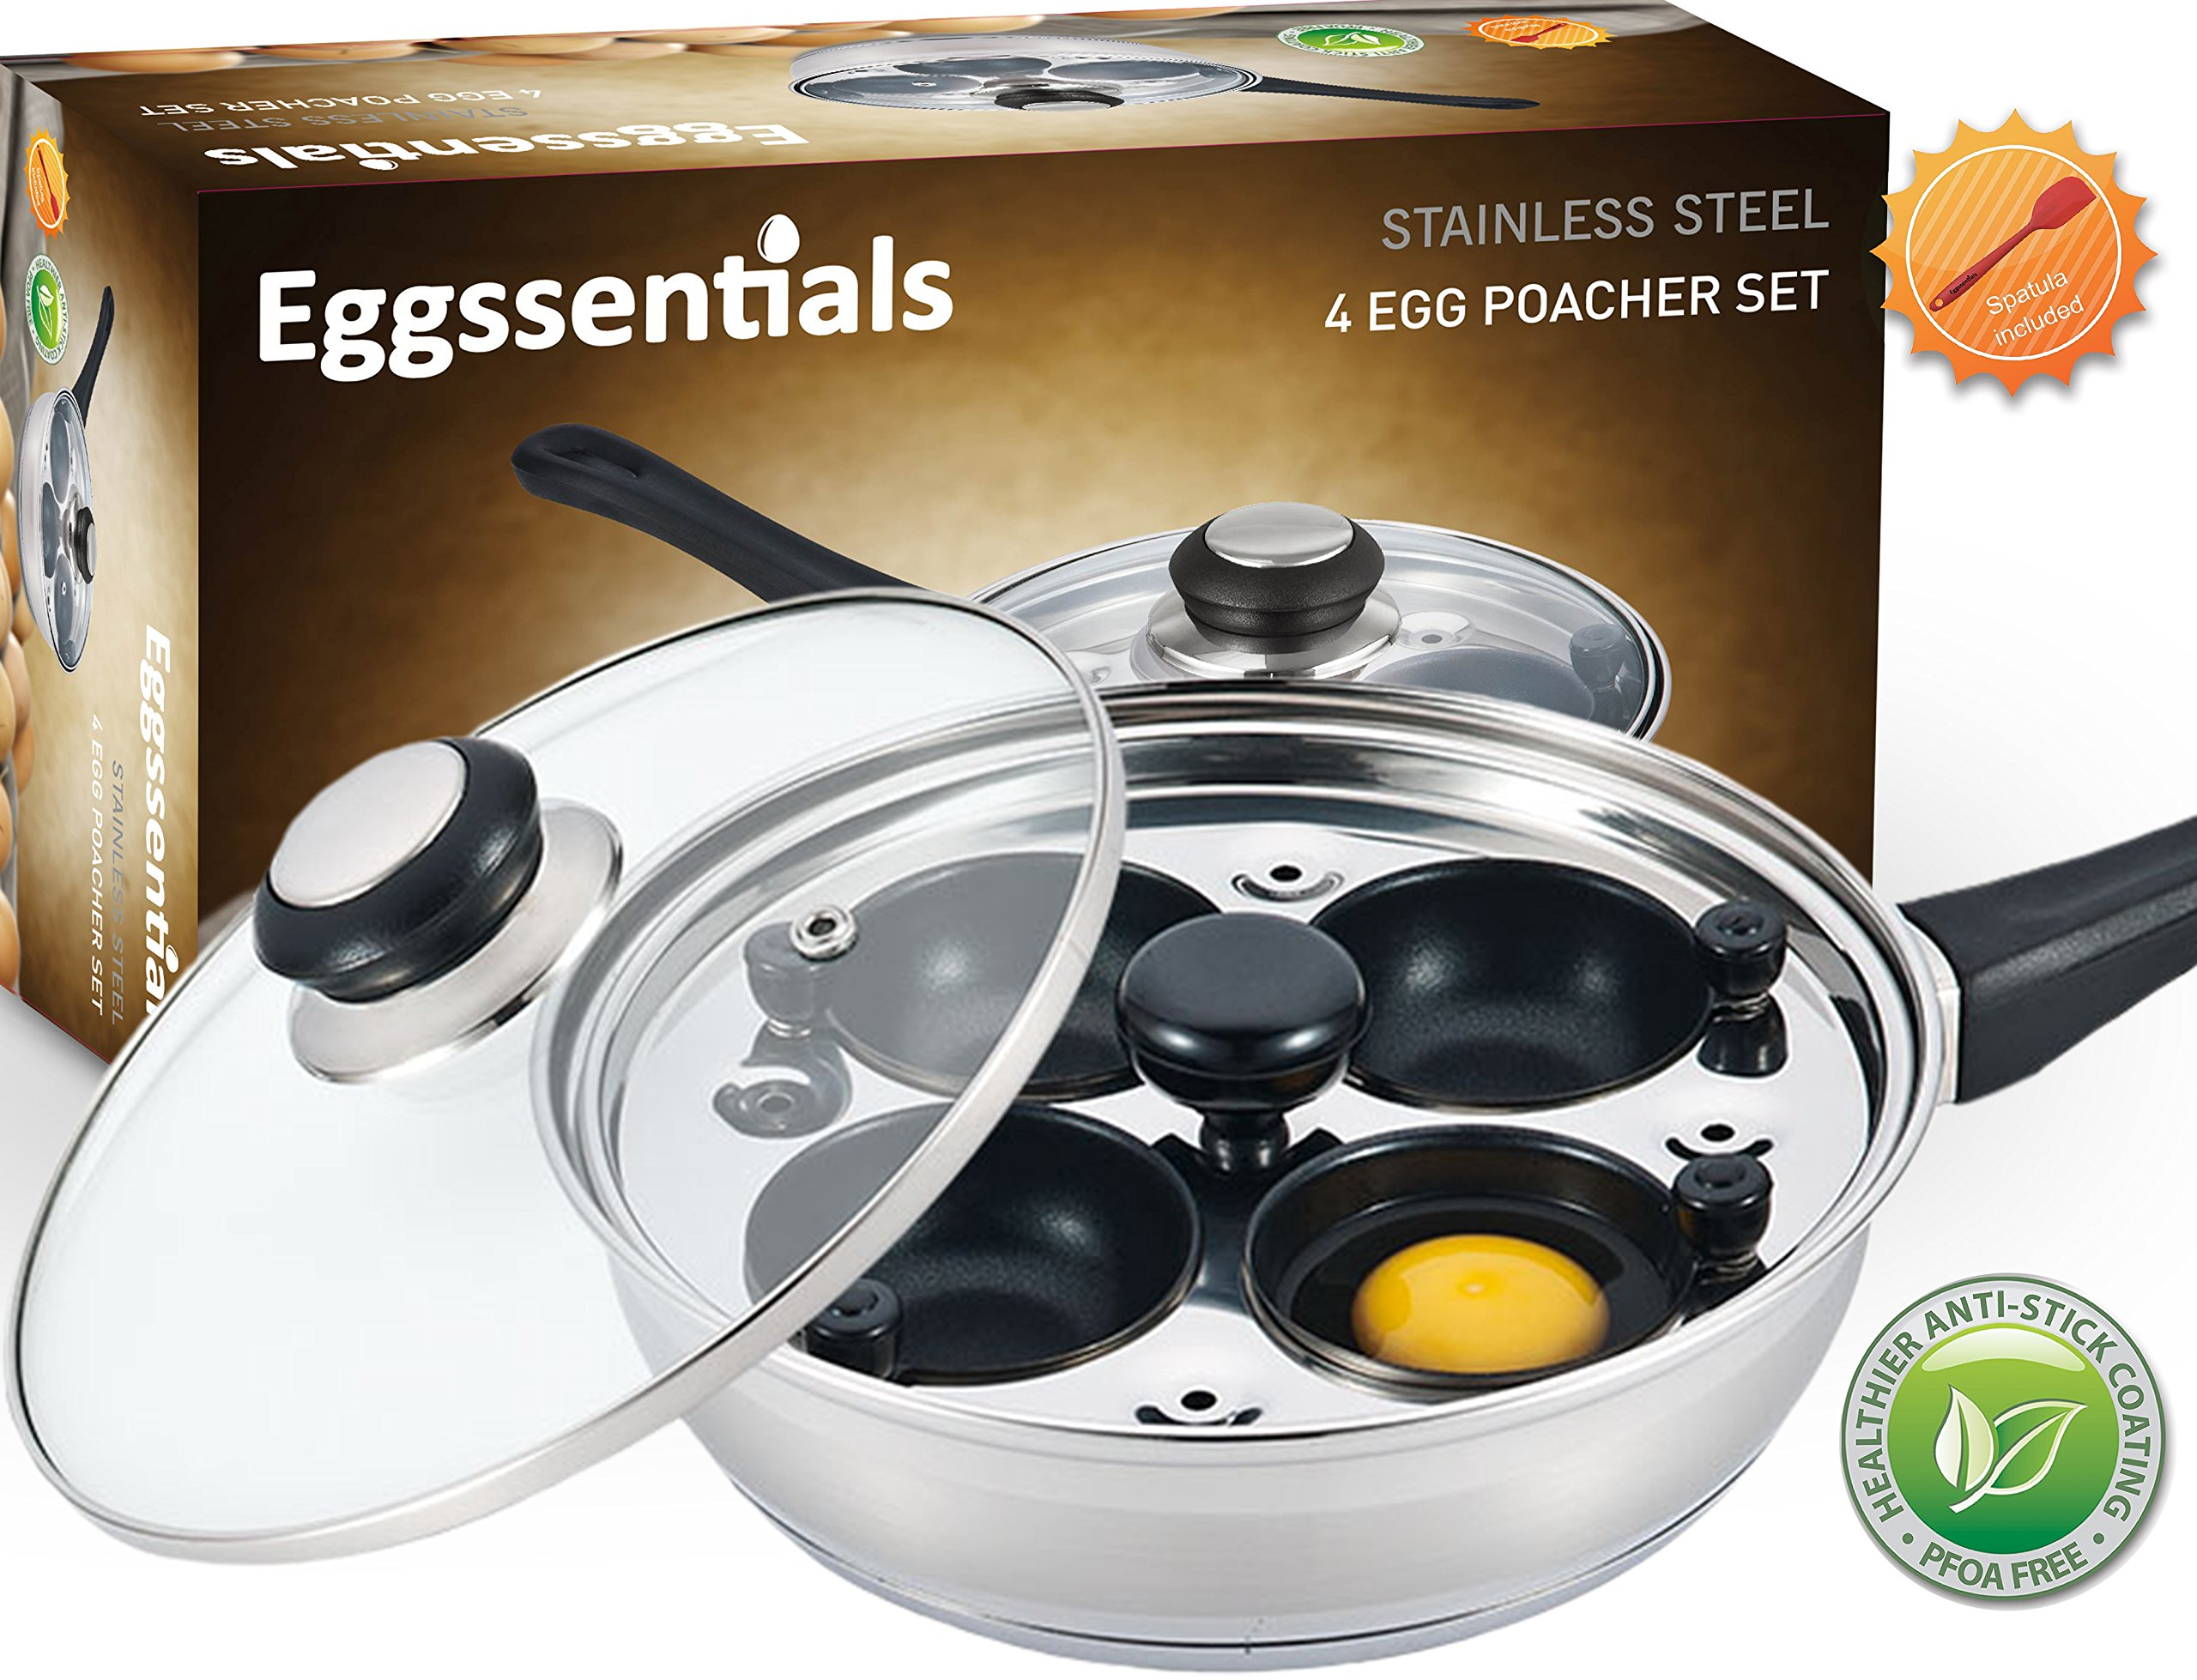 Eggssentials Poached Egg Maker - Nonstick 4 Egg Poaching Cups - Stainless Steel Egg Poacher Pan FDA Certified Food Grade Safe PFOA Free With Bonus Spatula by PremiumWares